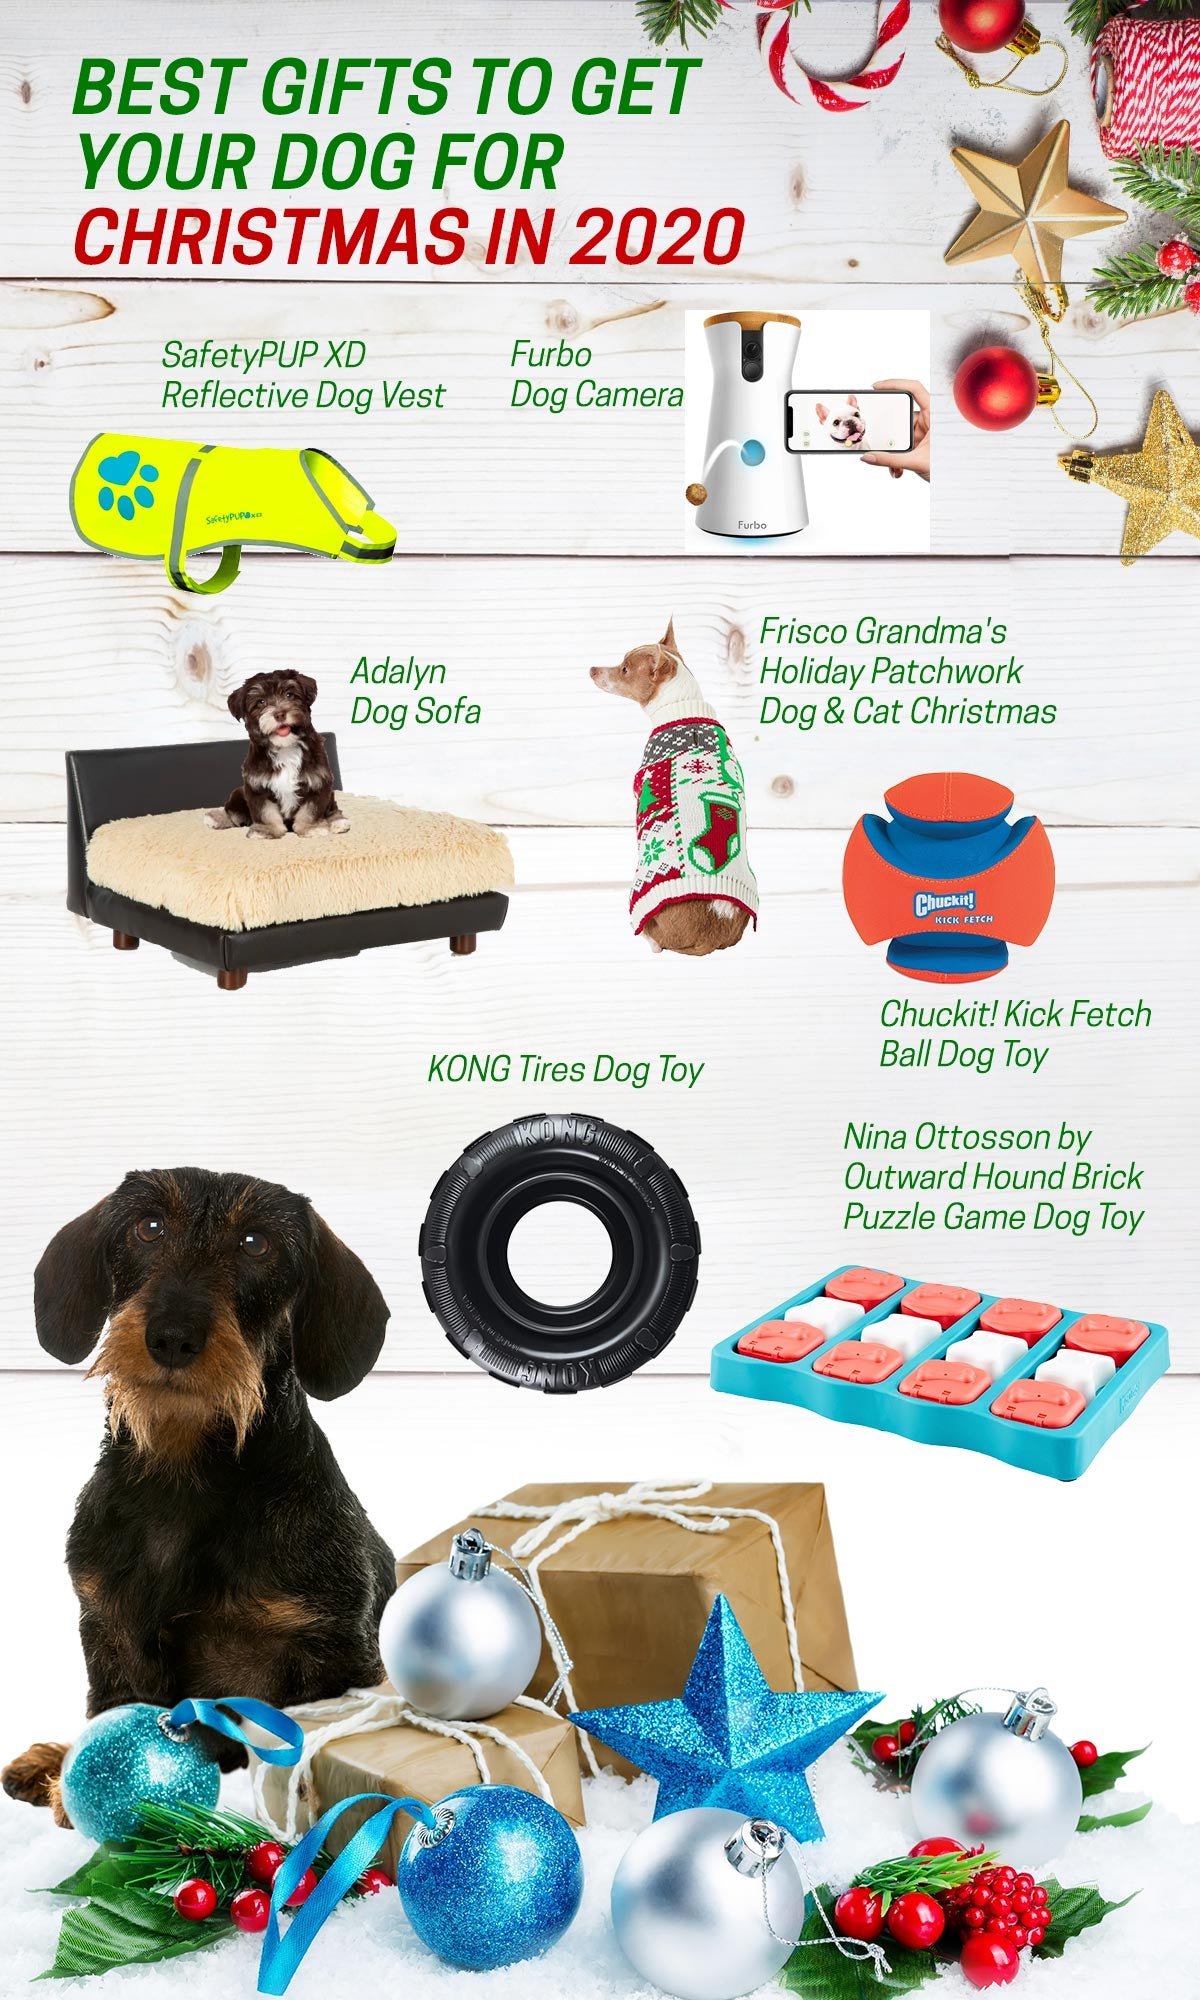 The 15 Best Christmas Gifts for your Dog in 2020 Infographic